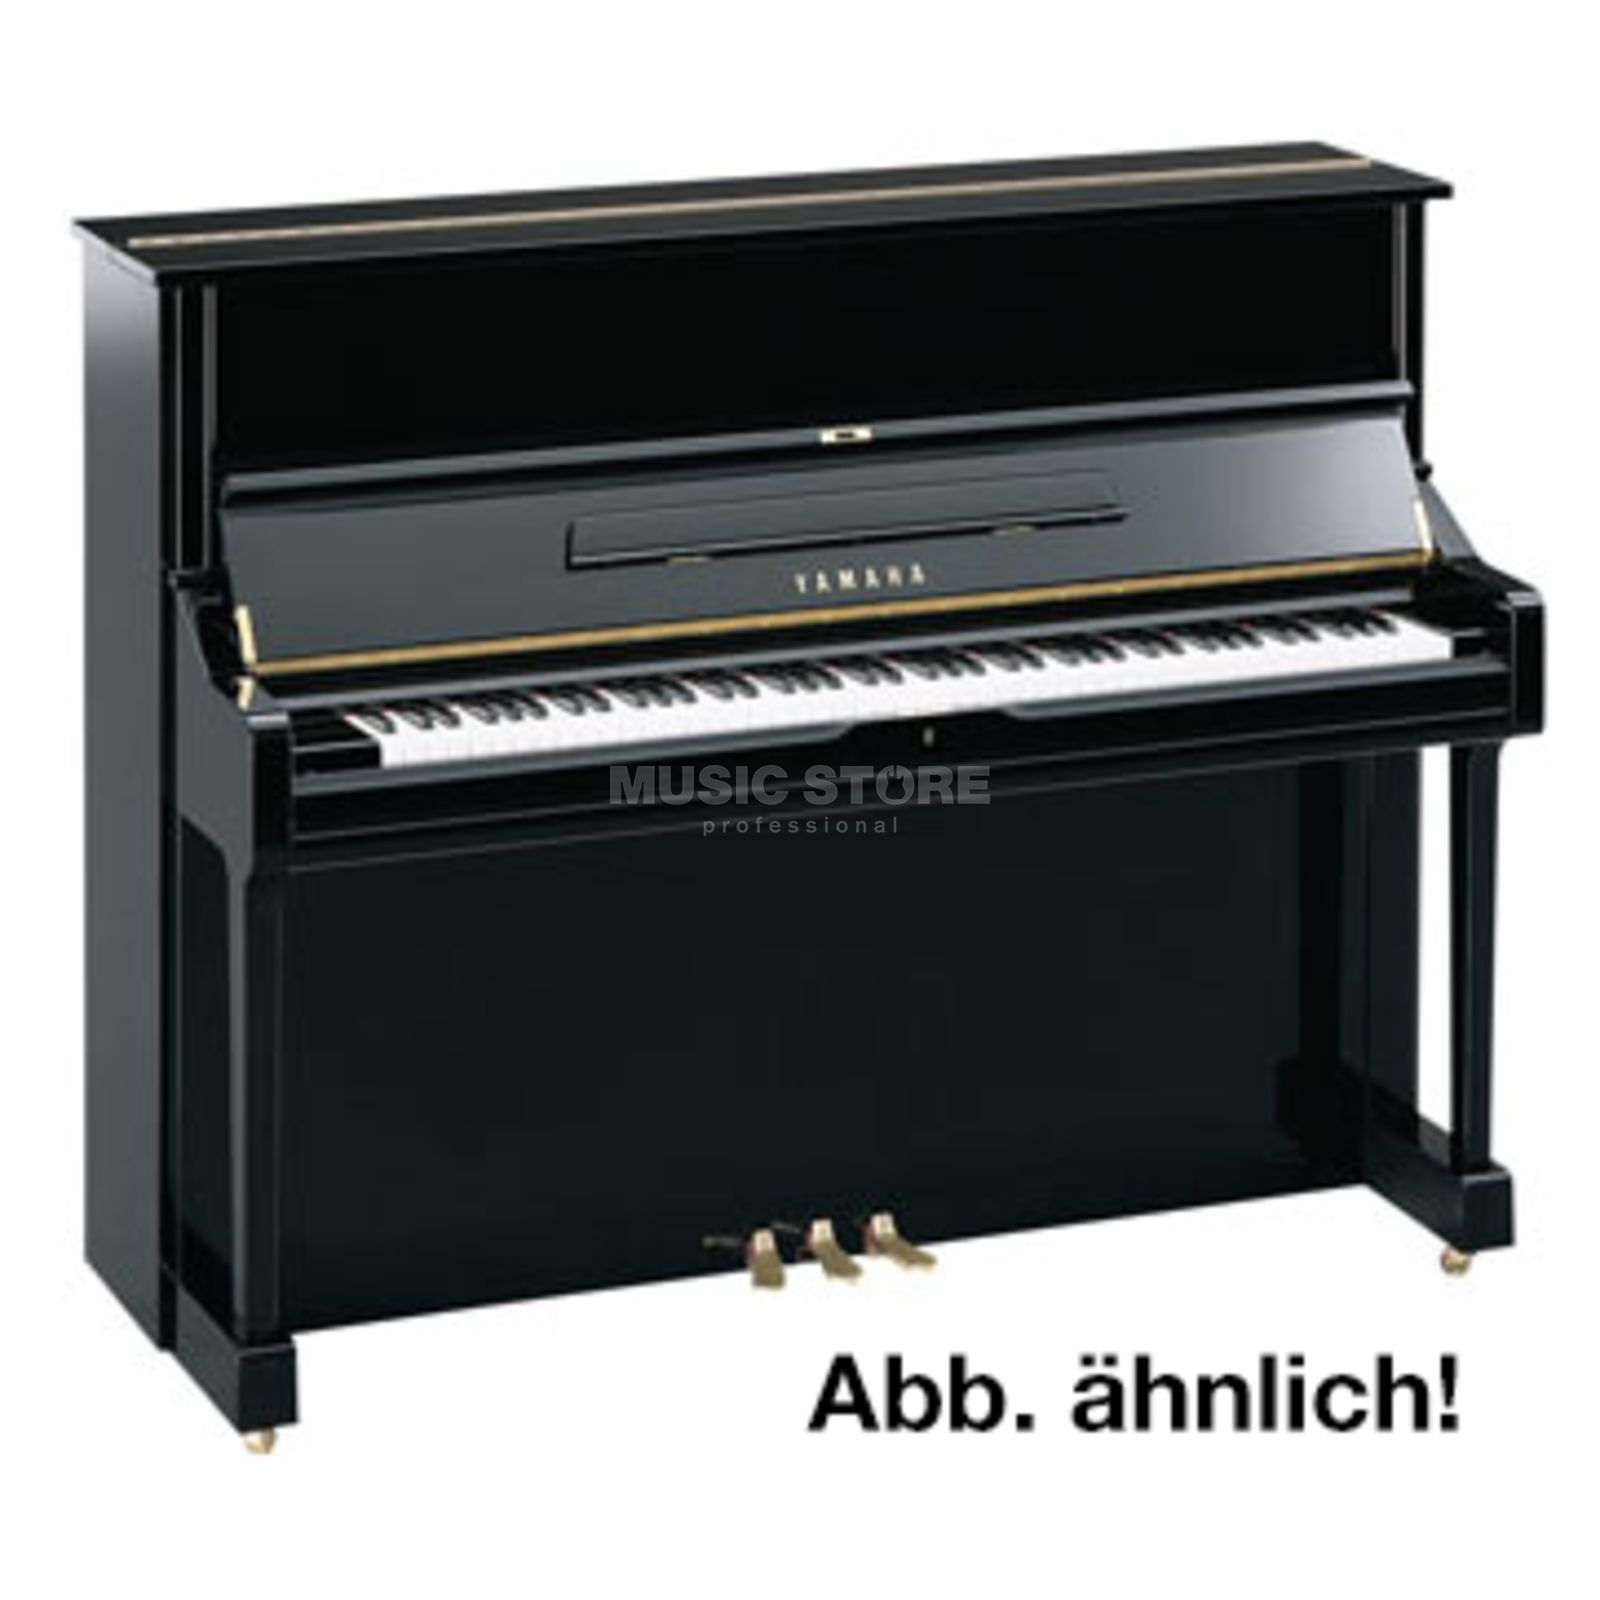 Yamaha UX1, gebraucht; Bj.´86 Snr. 4166615 Product Image